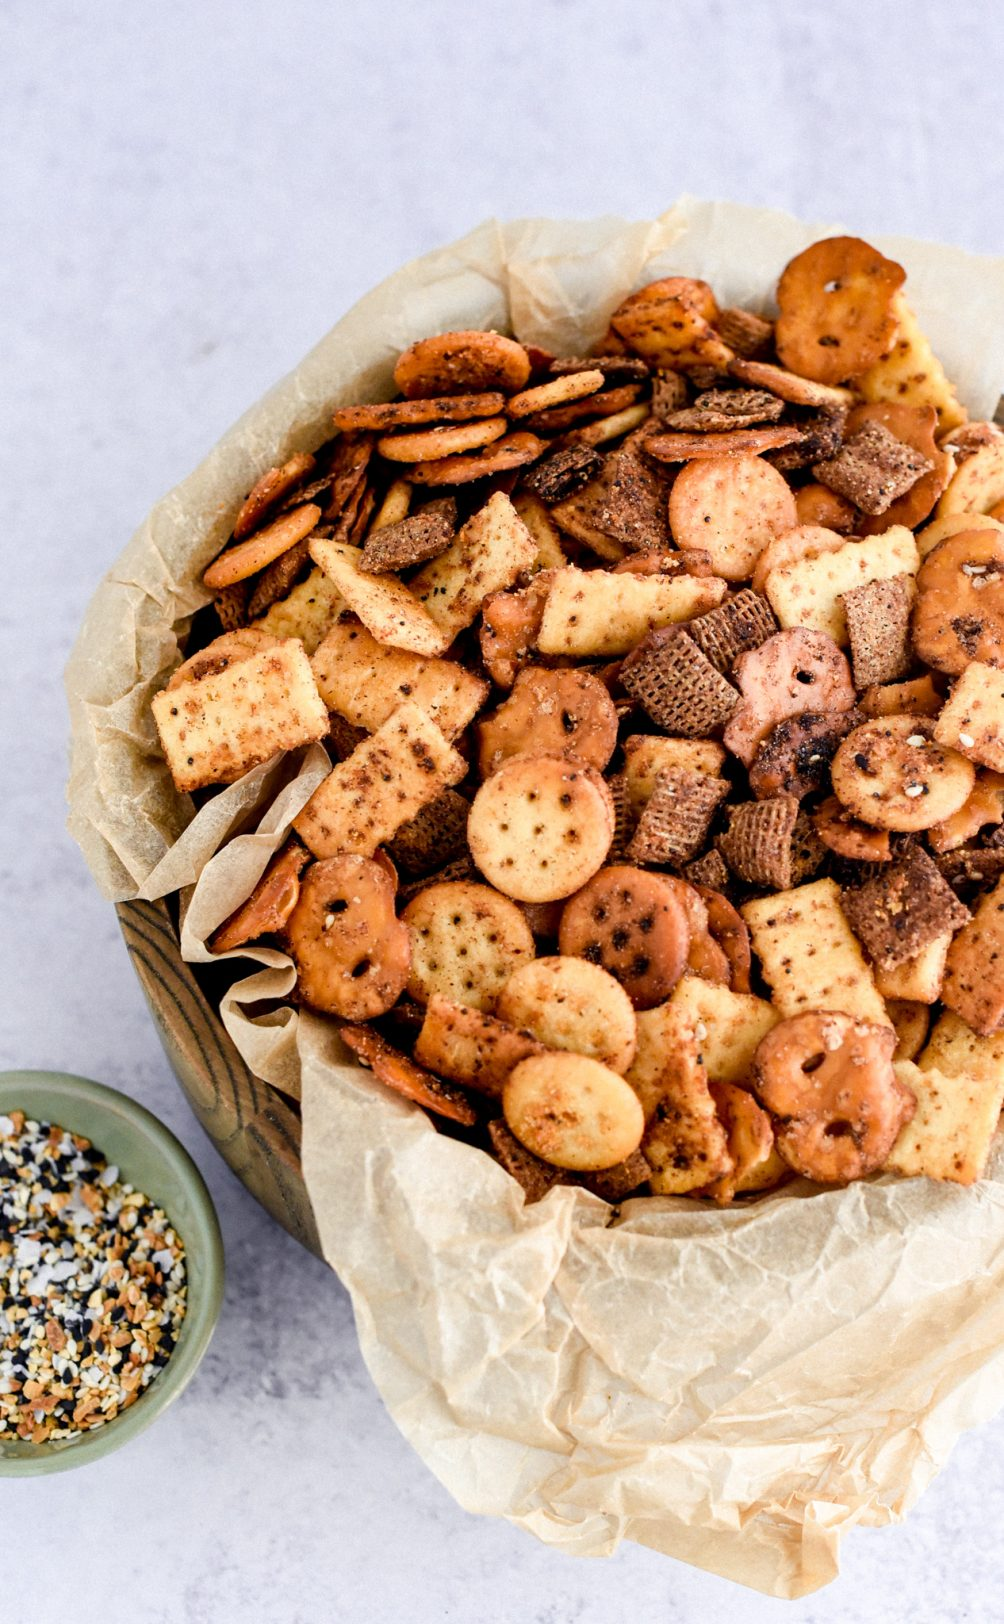 snack mix in serving bowl